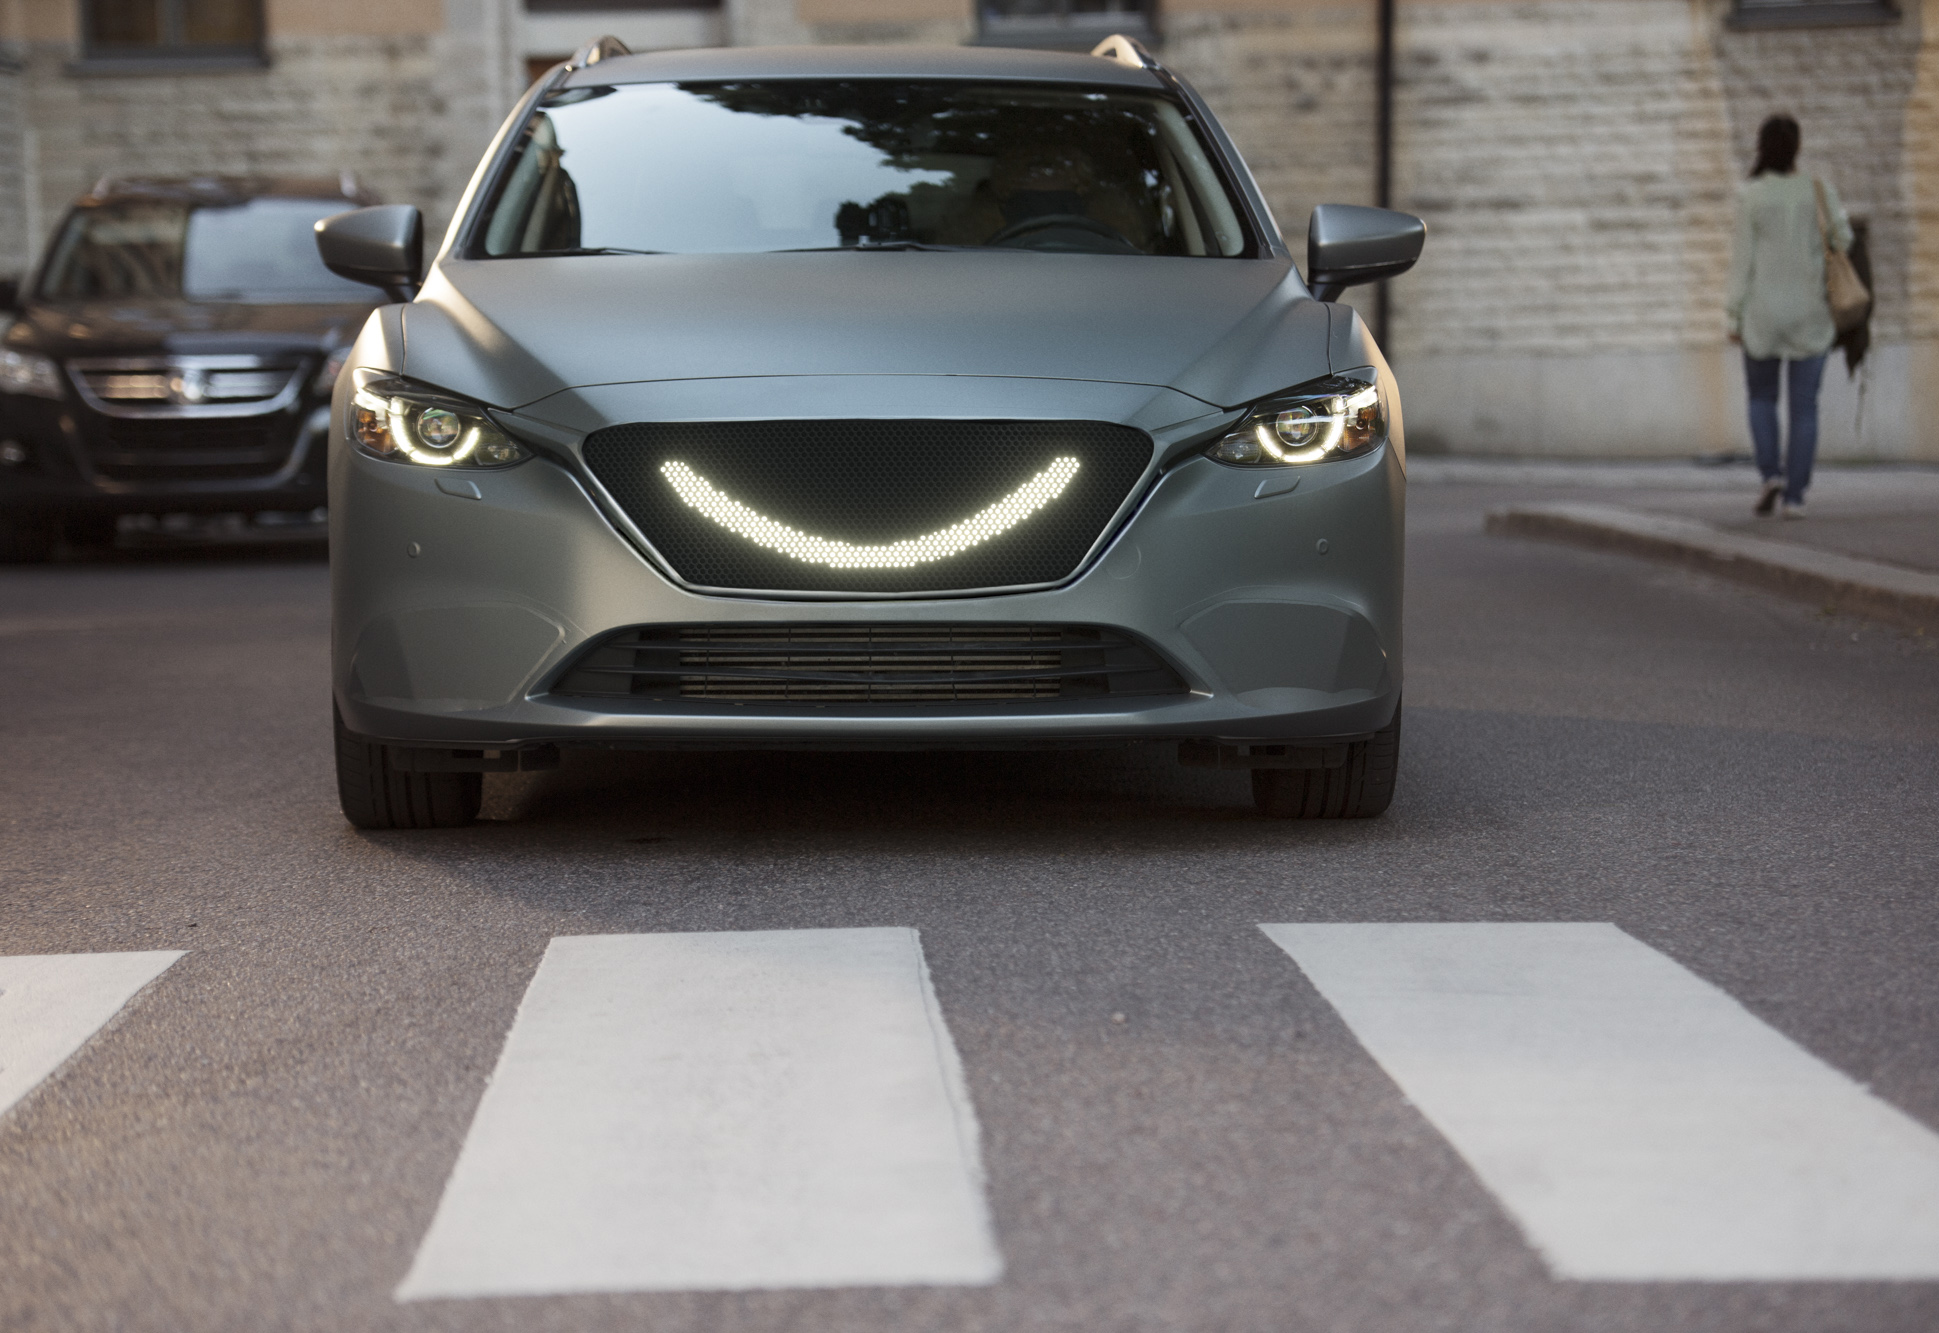 07 - When the self-driving car's sensors detect a pedestrian a smile lights up at the front of the car and the car stops.jpg